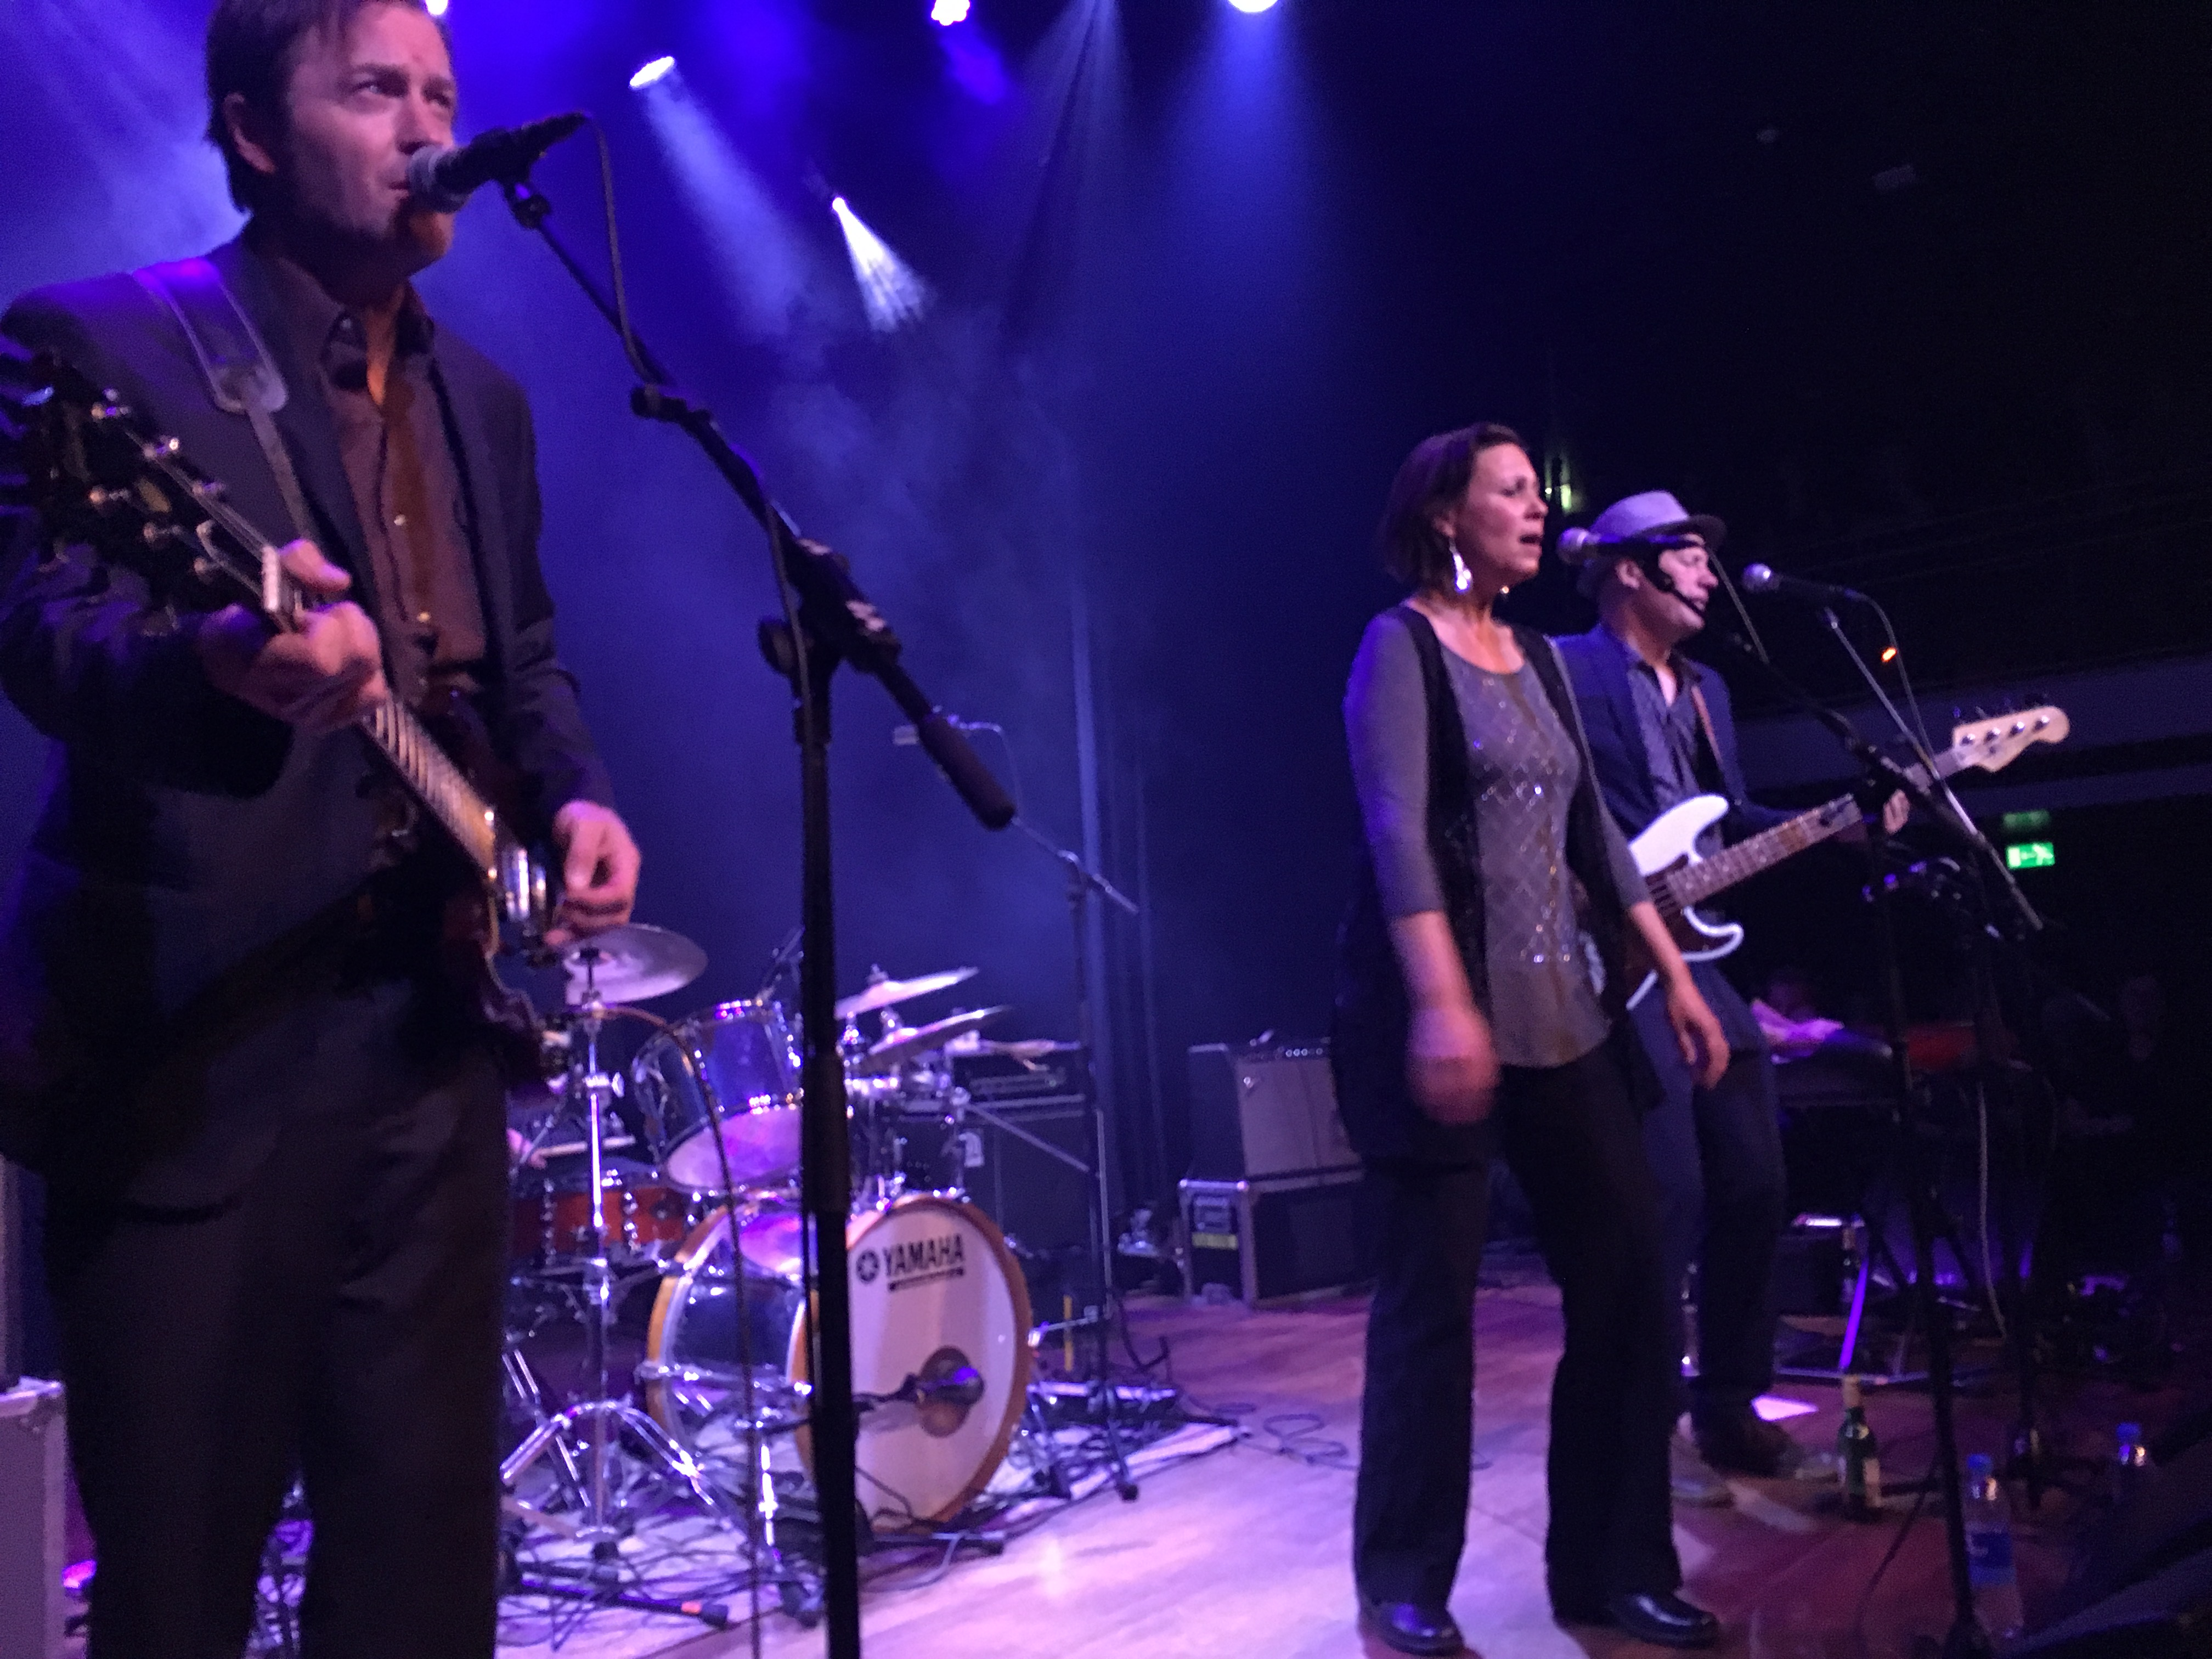 Concertreview: The Delines: Let's Be Us Again